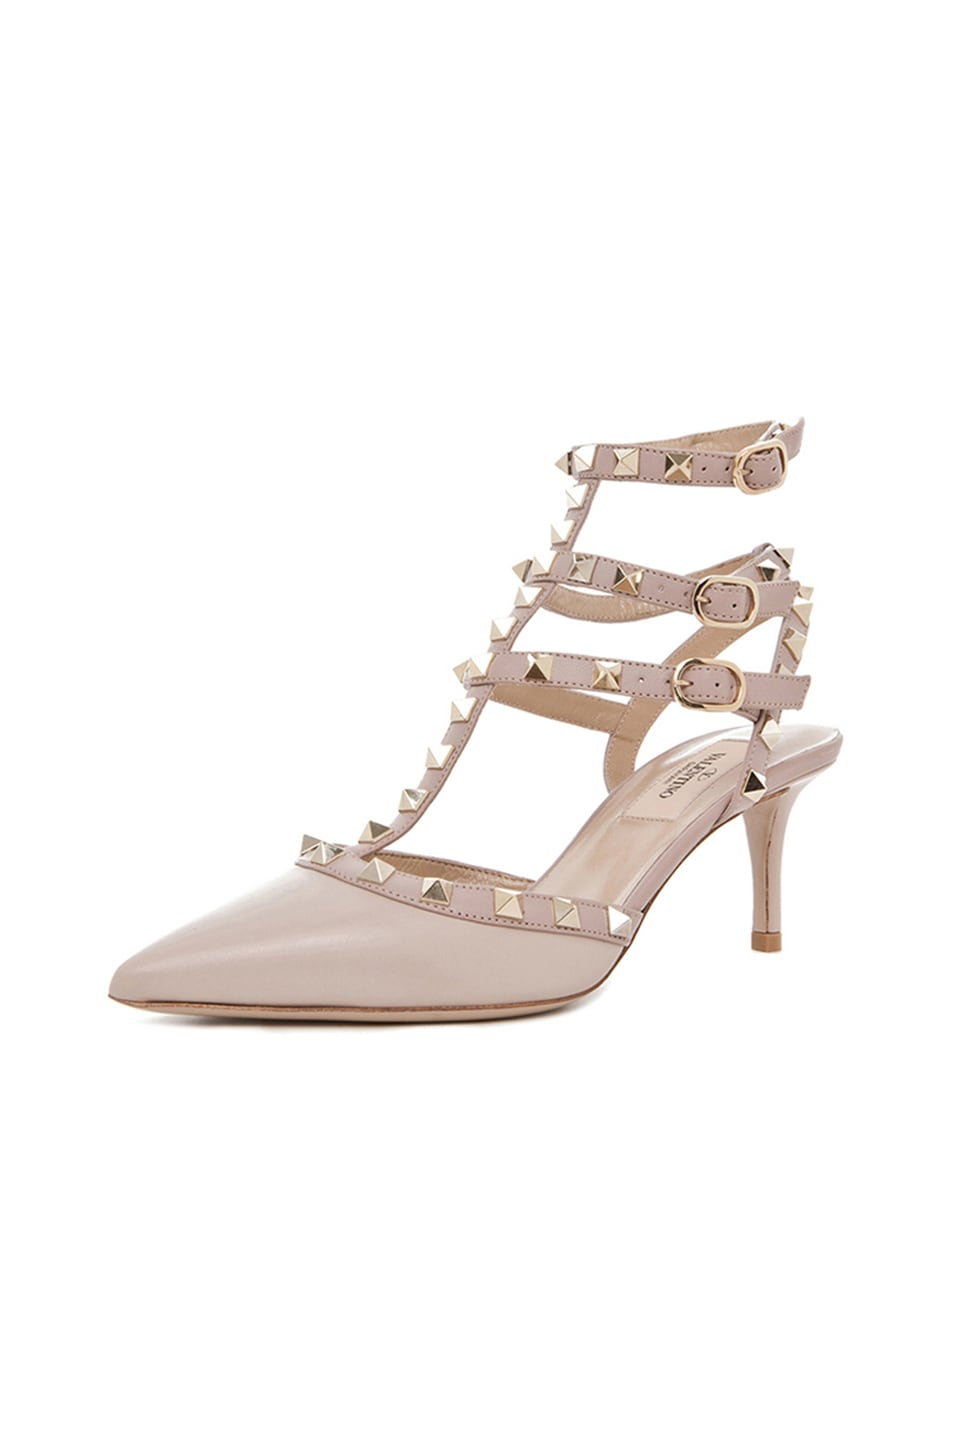 Image 2 of Valentino Rockstud Leather Slingbacks T.65 in Powder